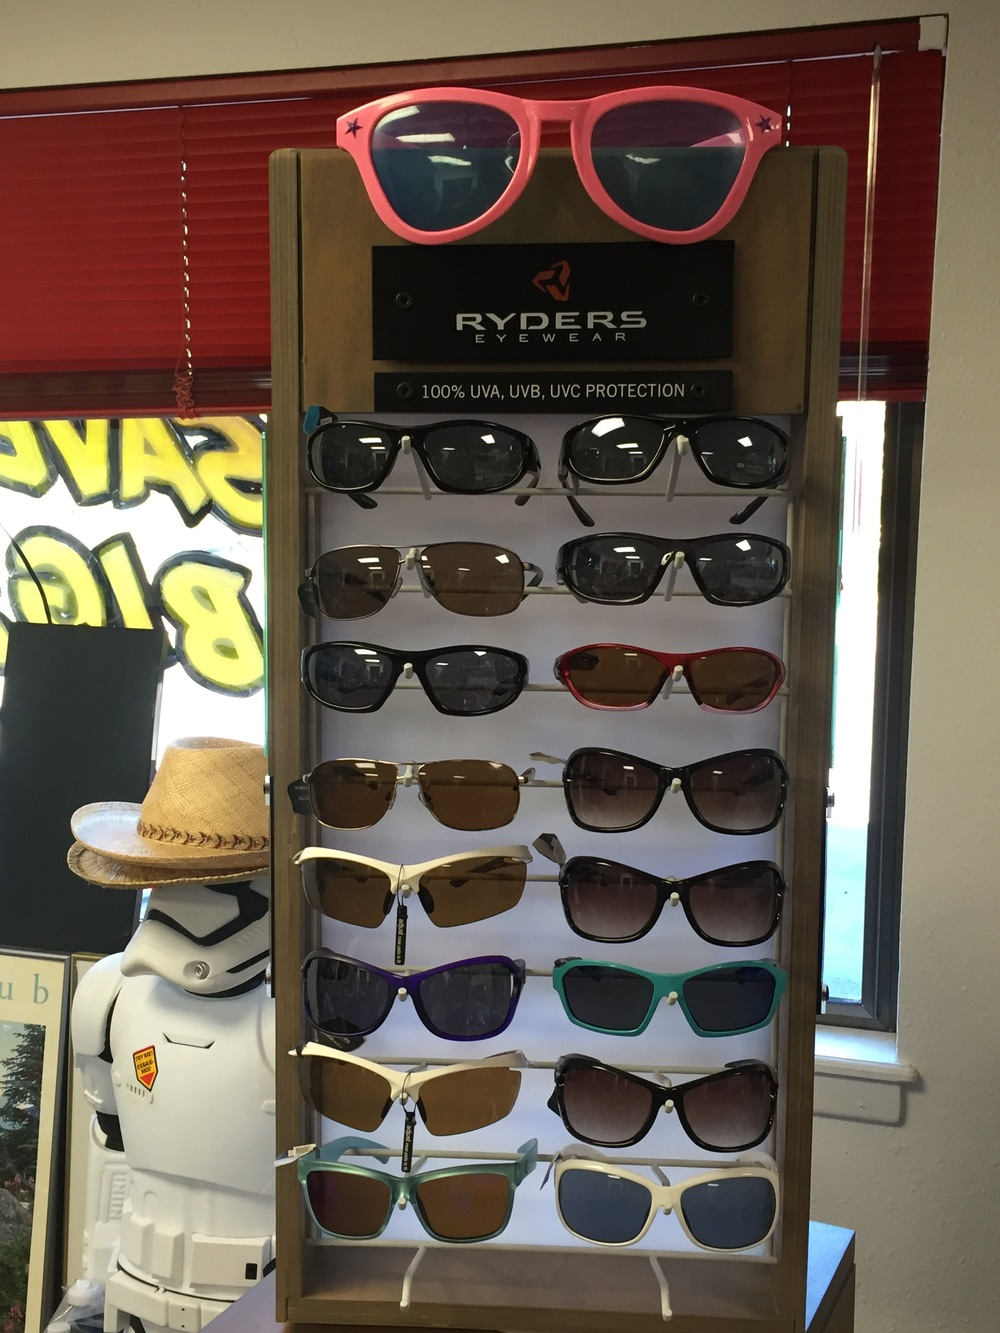 Sunglasses from Ryder